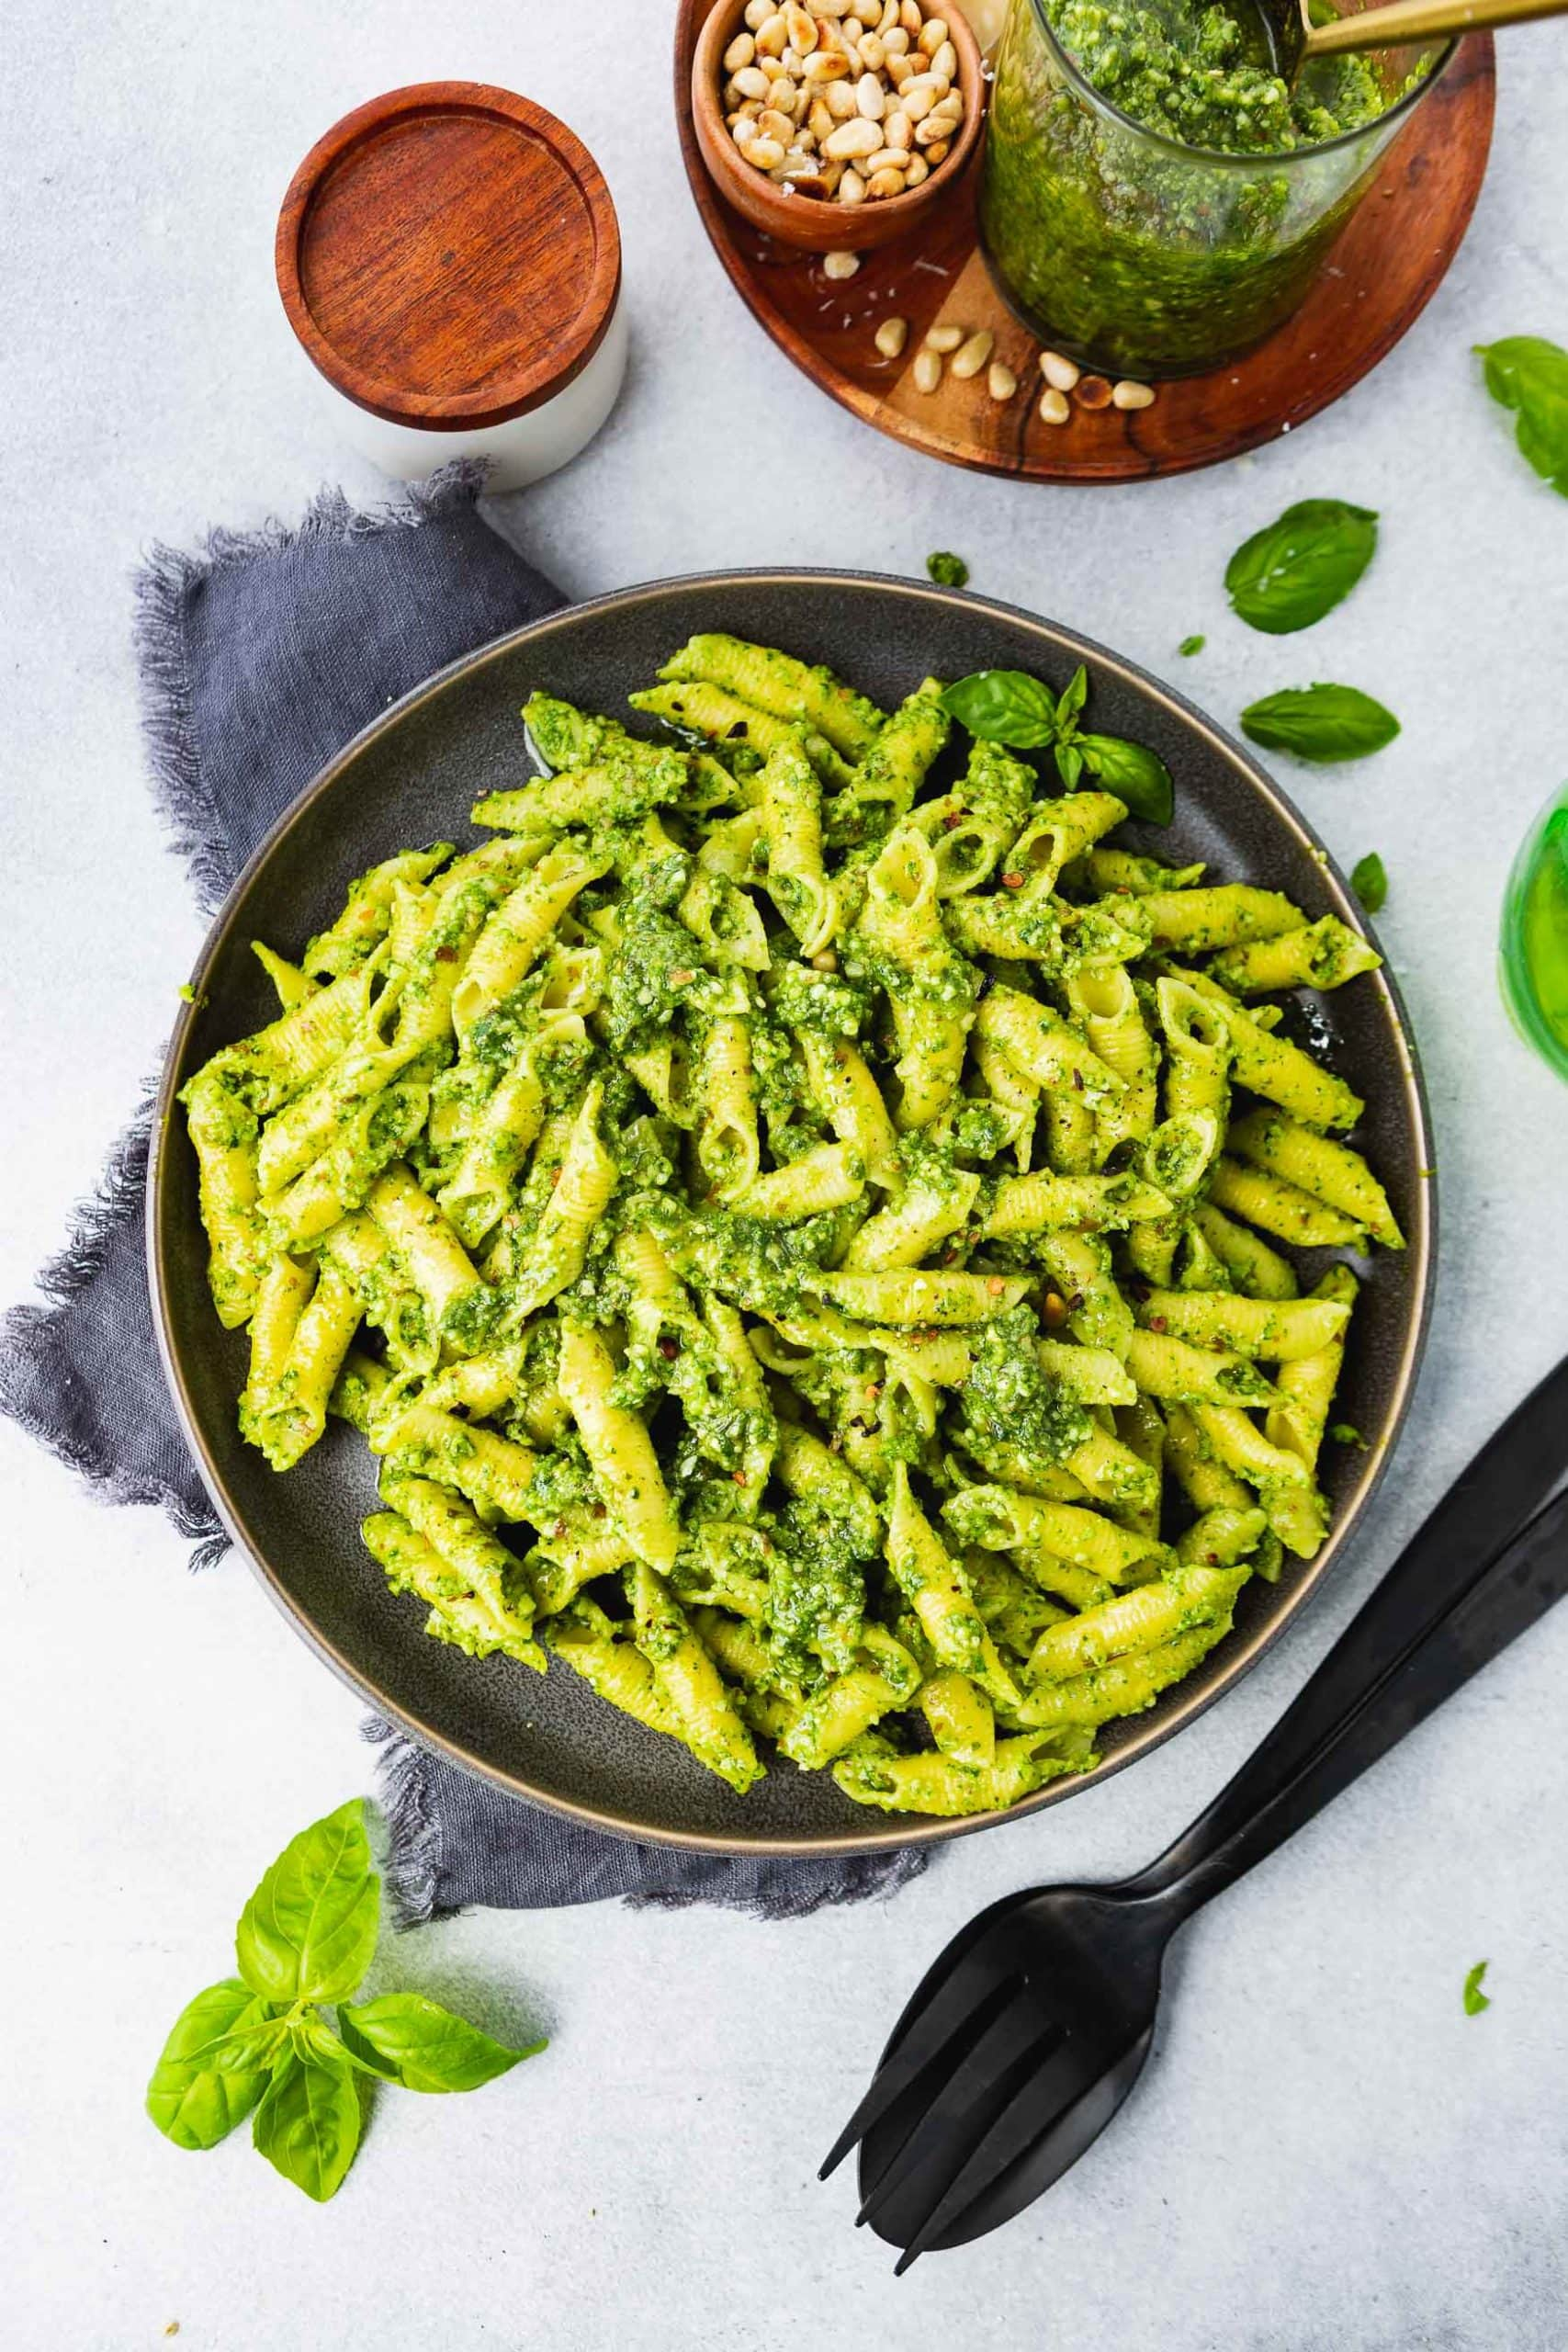 a photo of a plate of bright green pesto penne pasta with a fork and spoon sitting next to the plate and fresh basil leaves scattered around the plate.